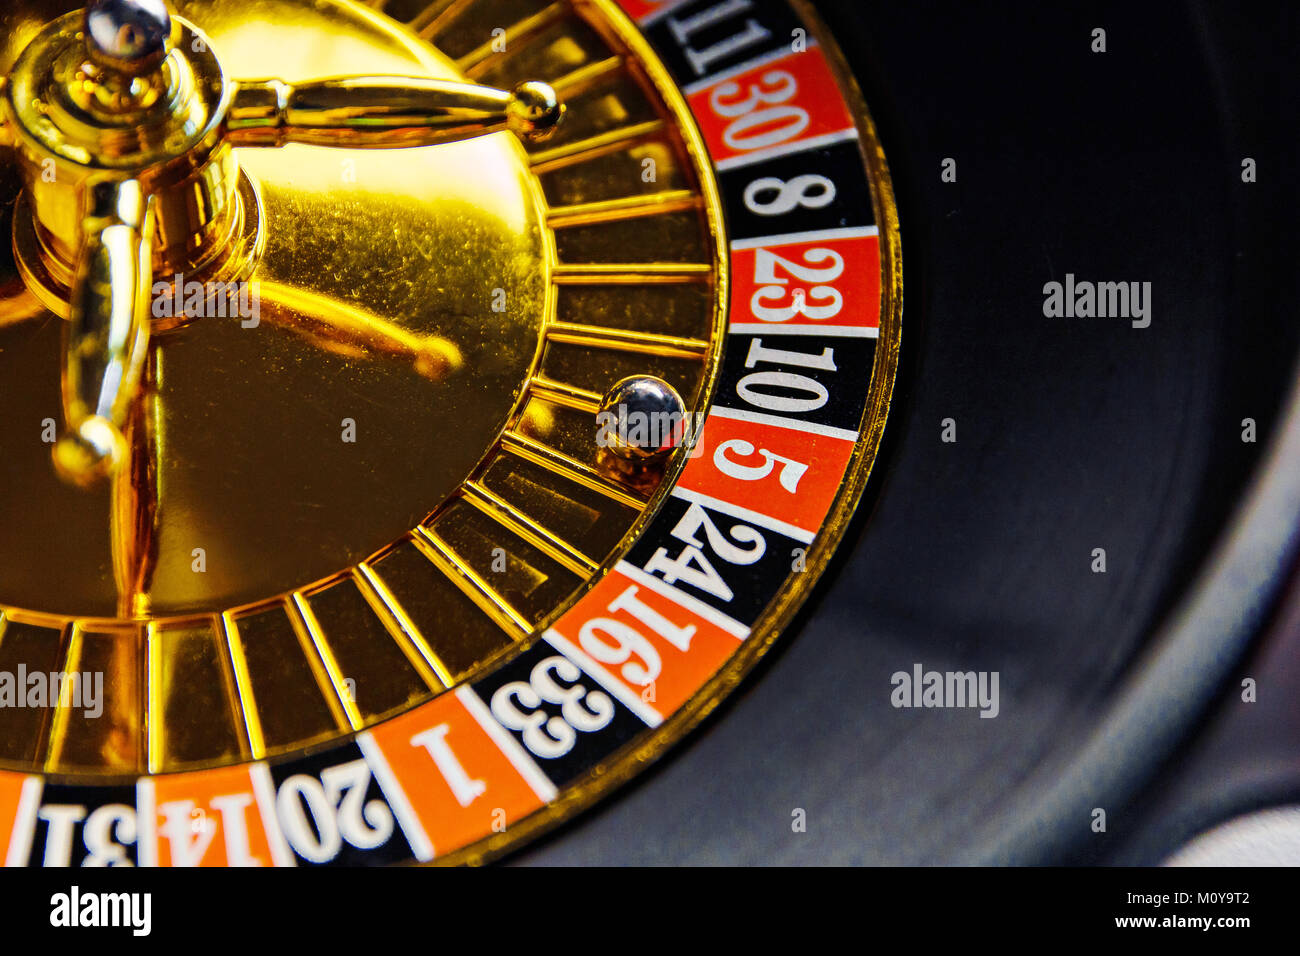 drunk roulette .play for a big company. - Stock Image